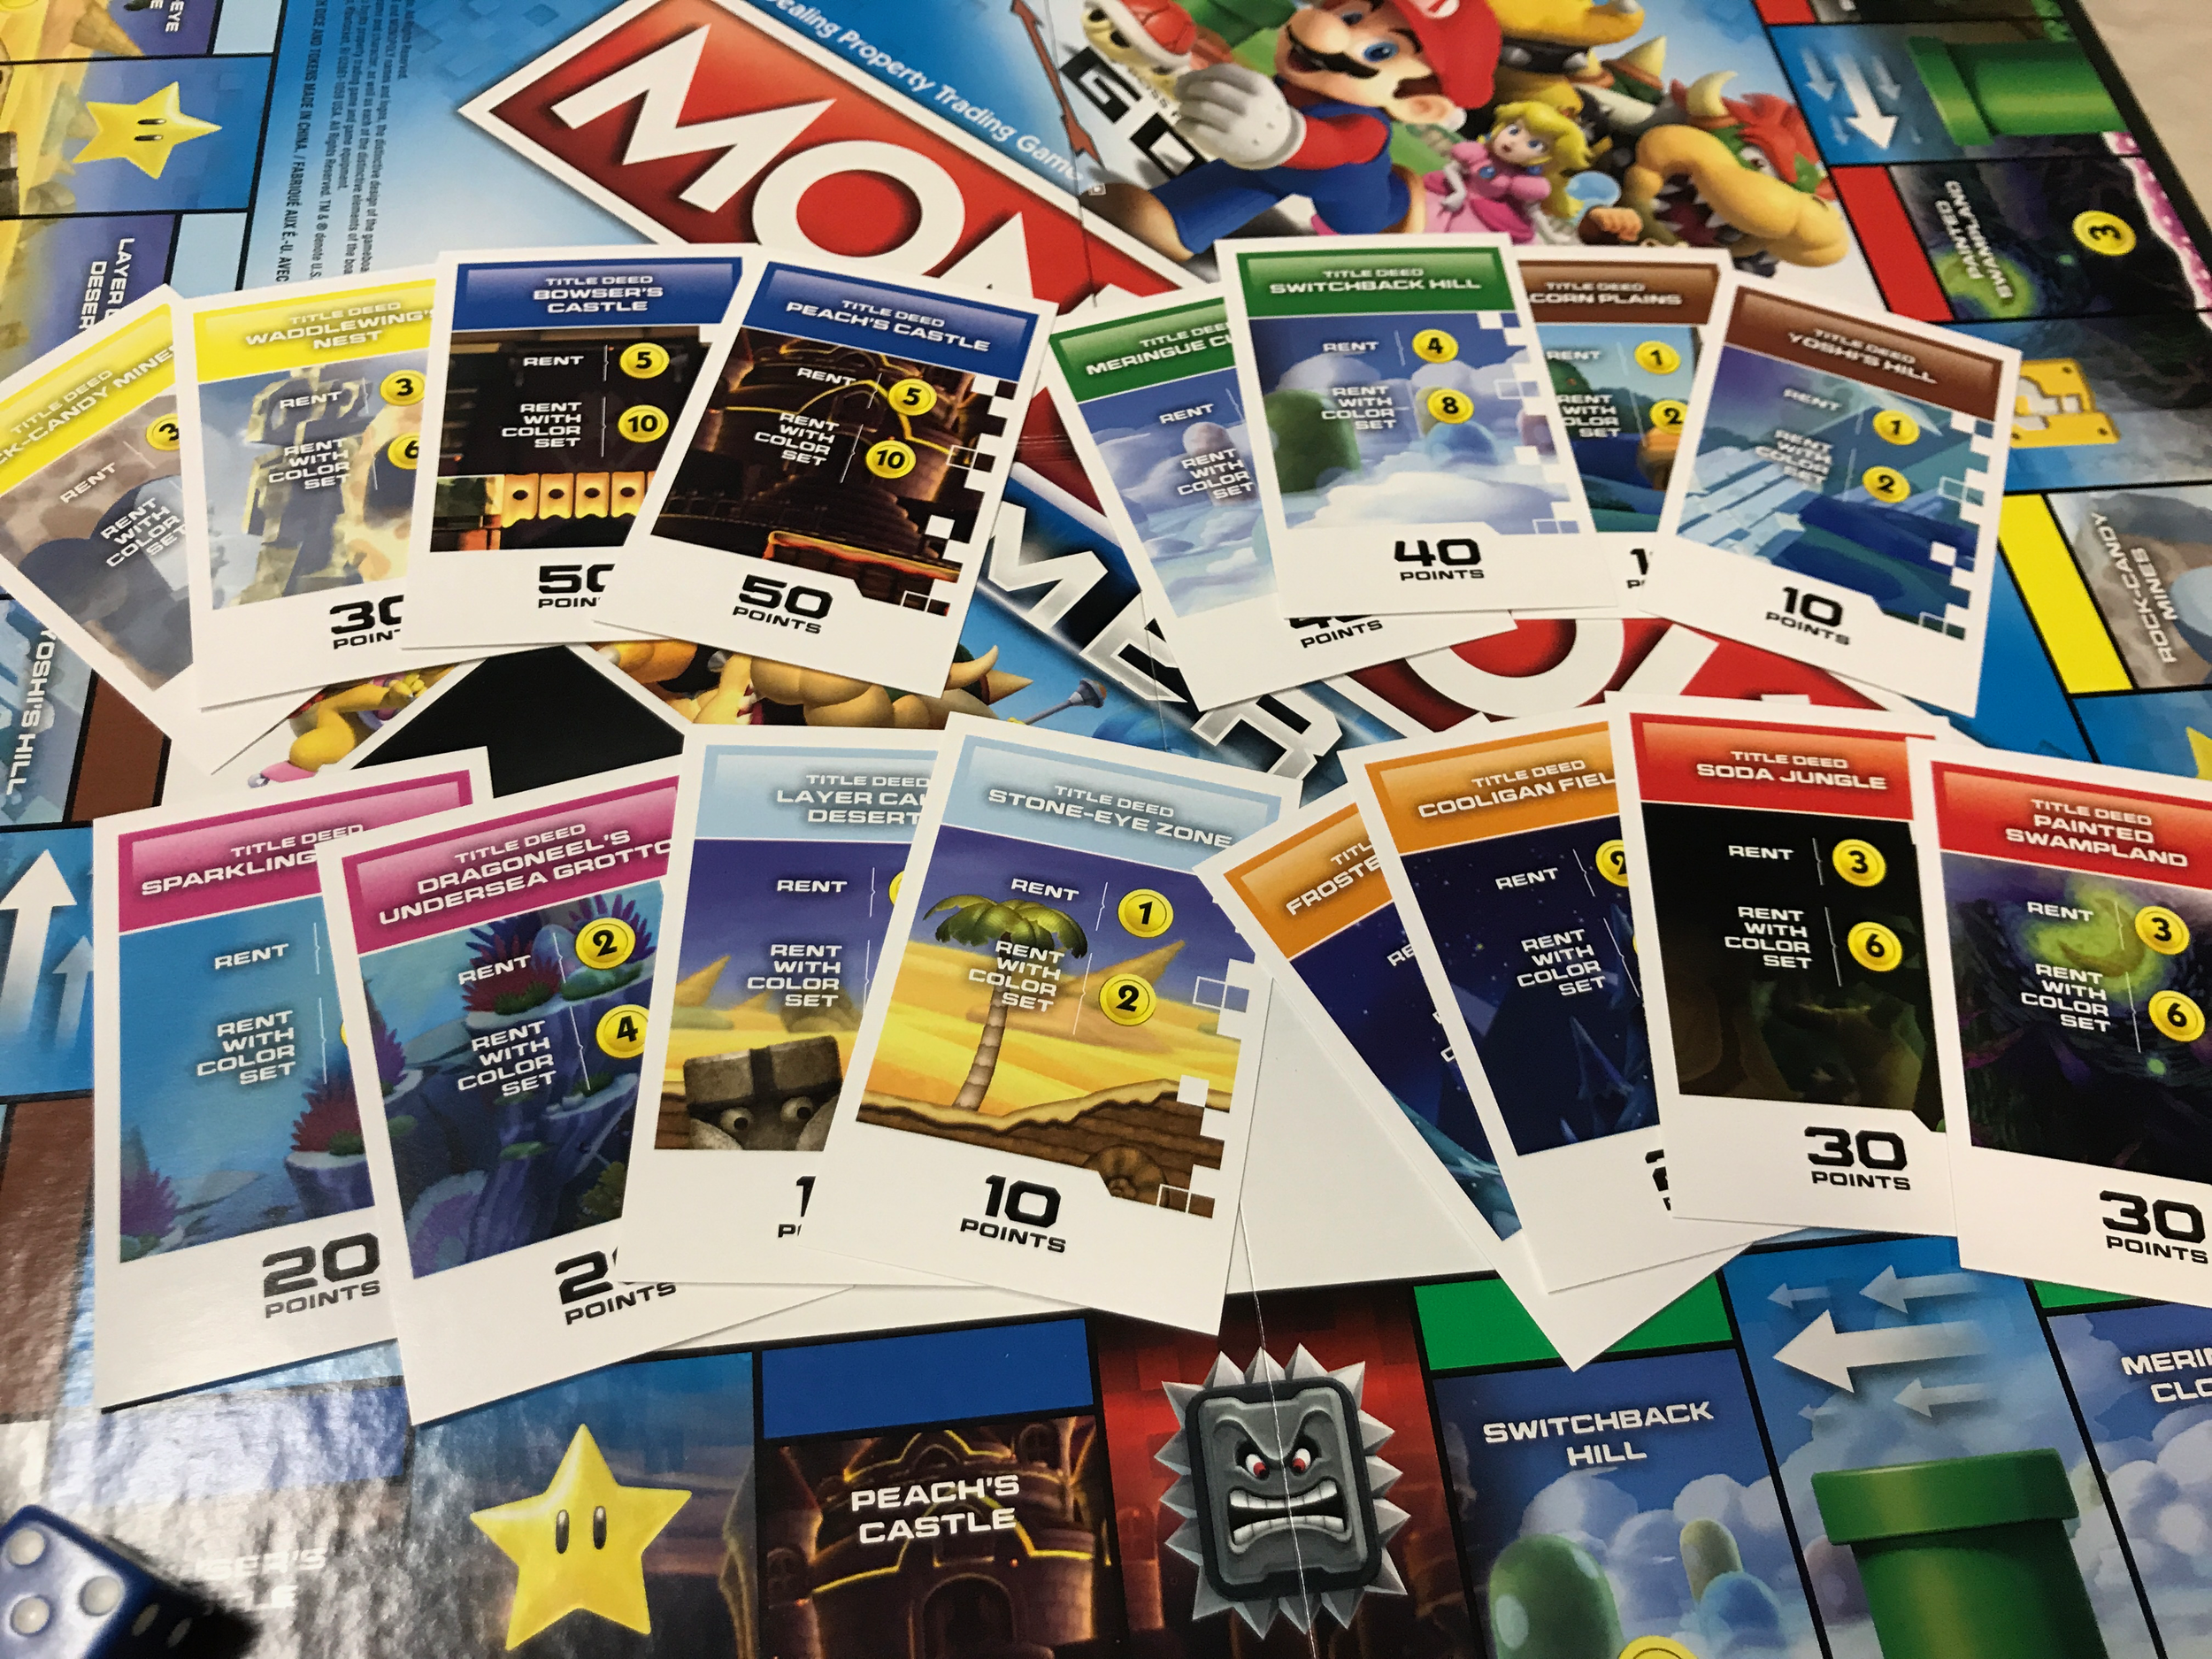 Various cards showing the properties based on real Super Mario Bros. levels.